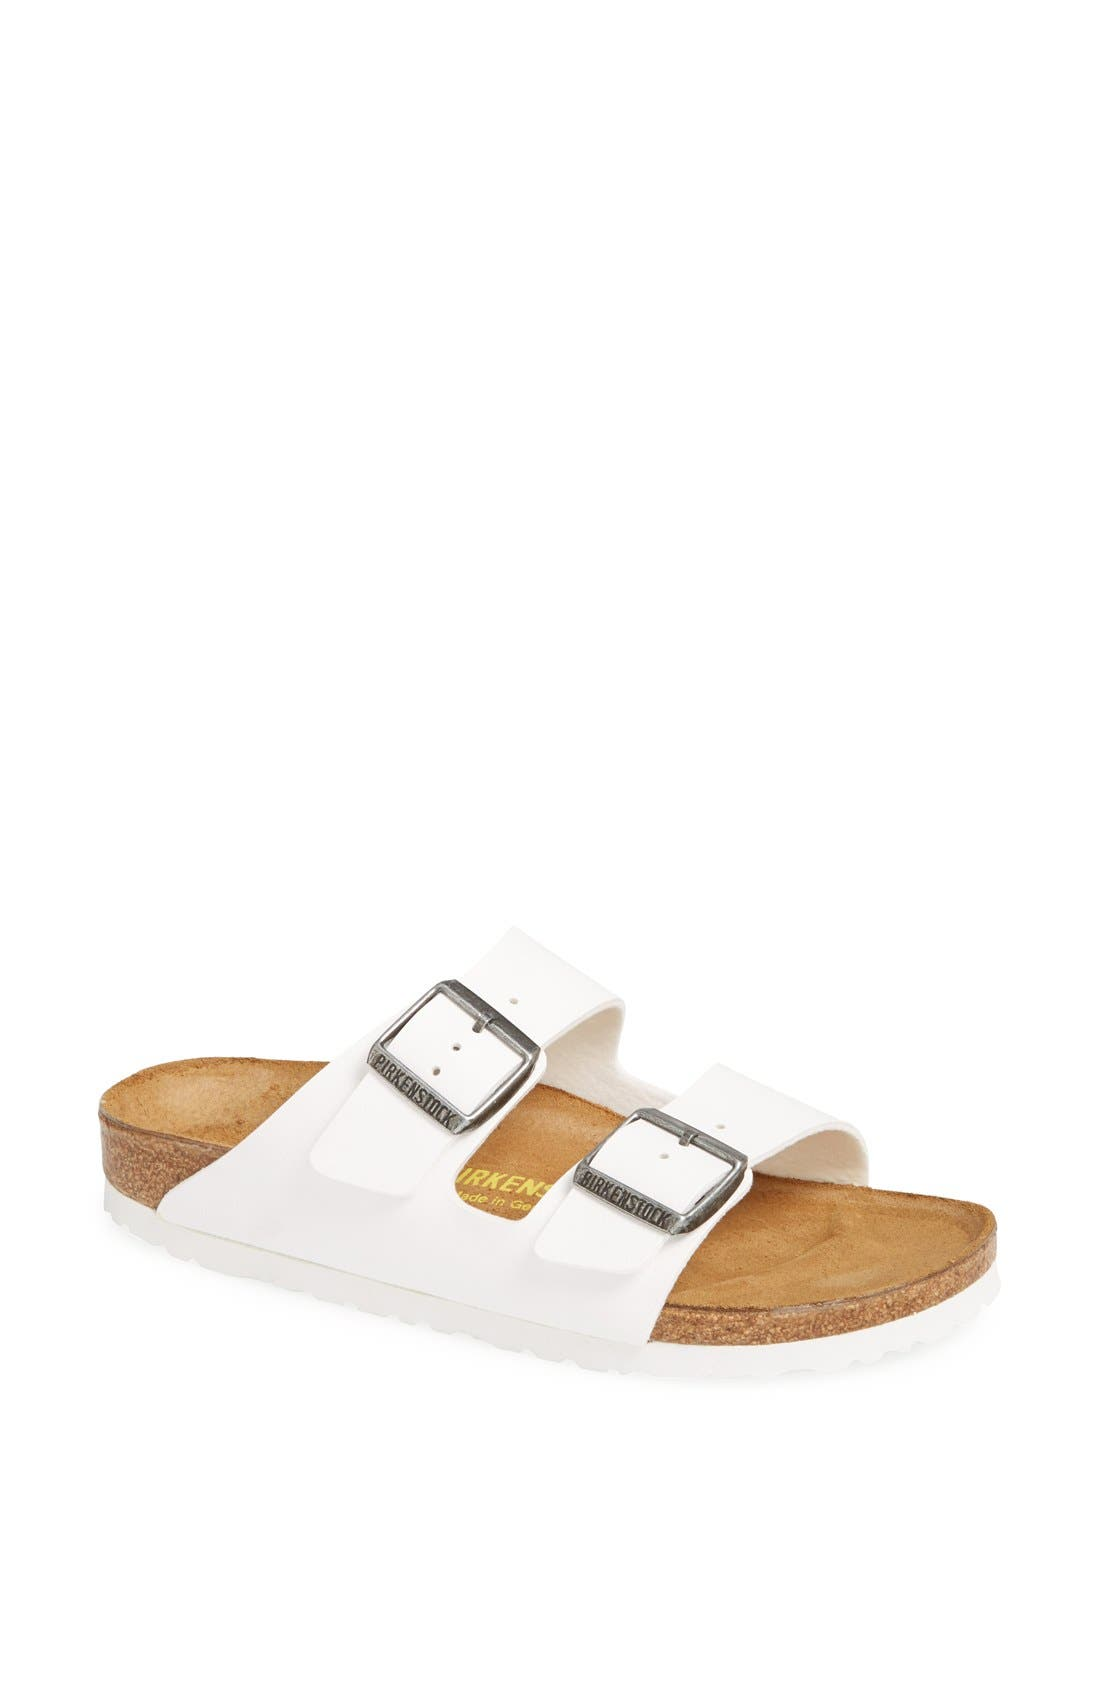 'Arizona' White Birko-Flor Sandal,                             Main thumbnail 1, color,                             WHITE SYNTHETIC LEATHER